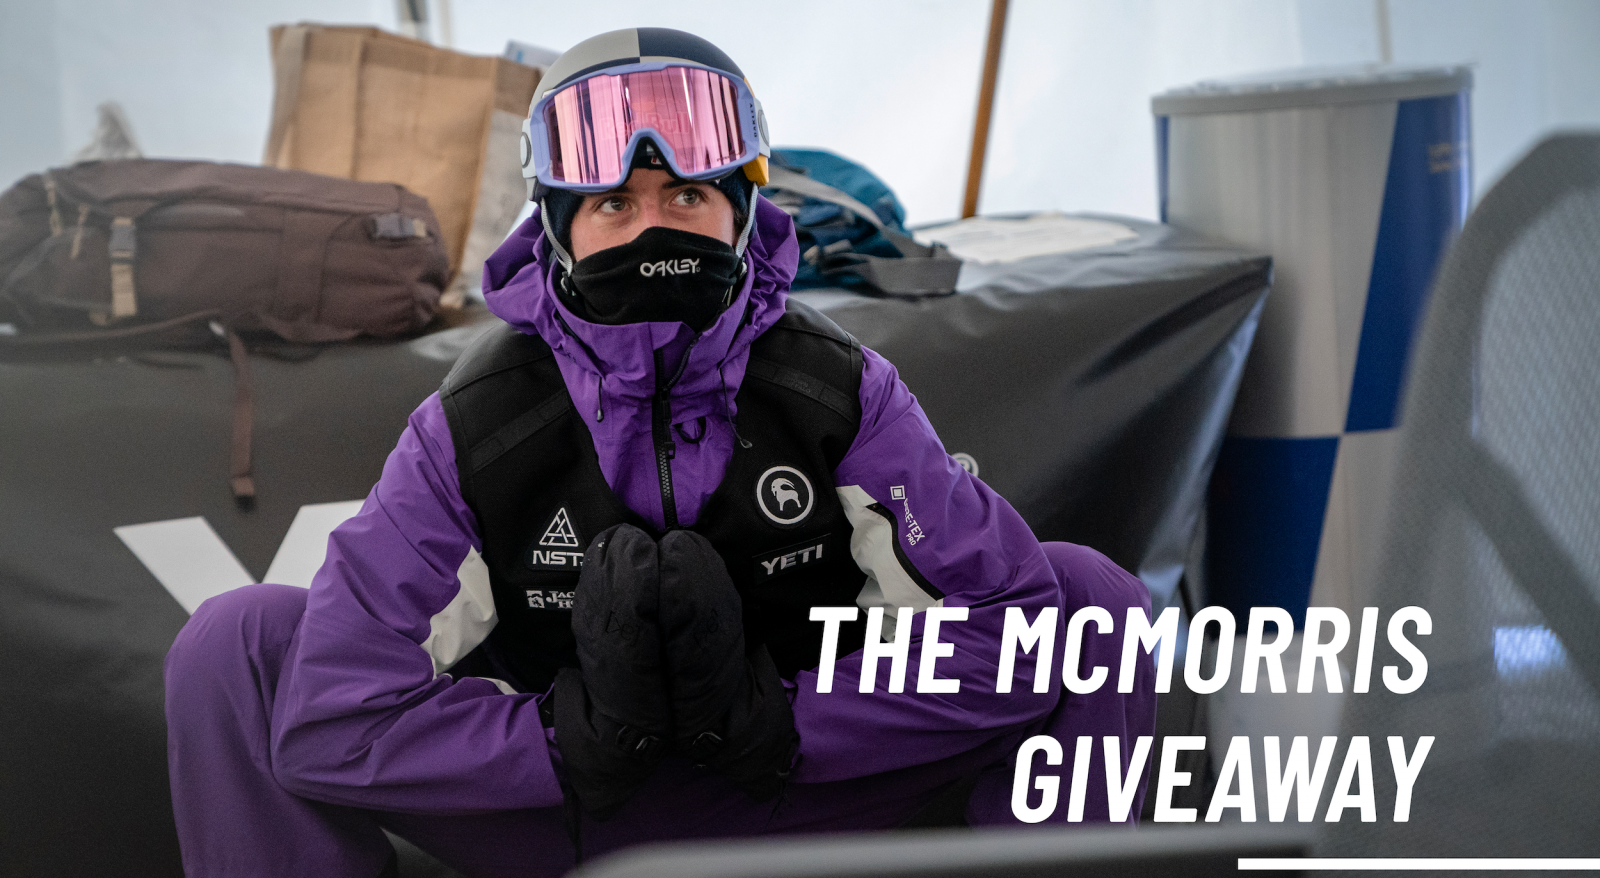 McMorris Giveaway ENTER HERE